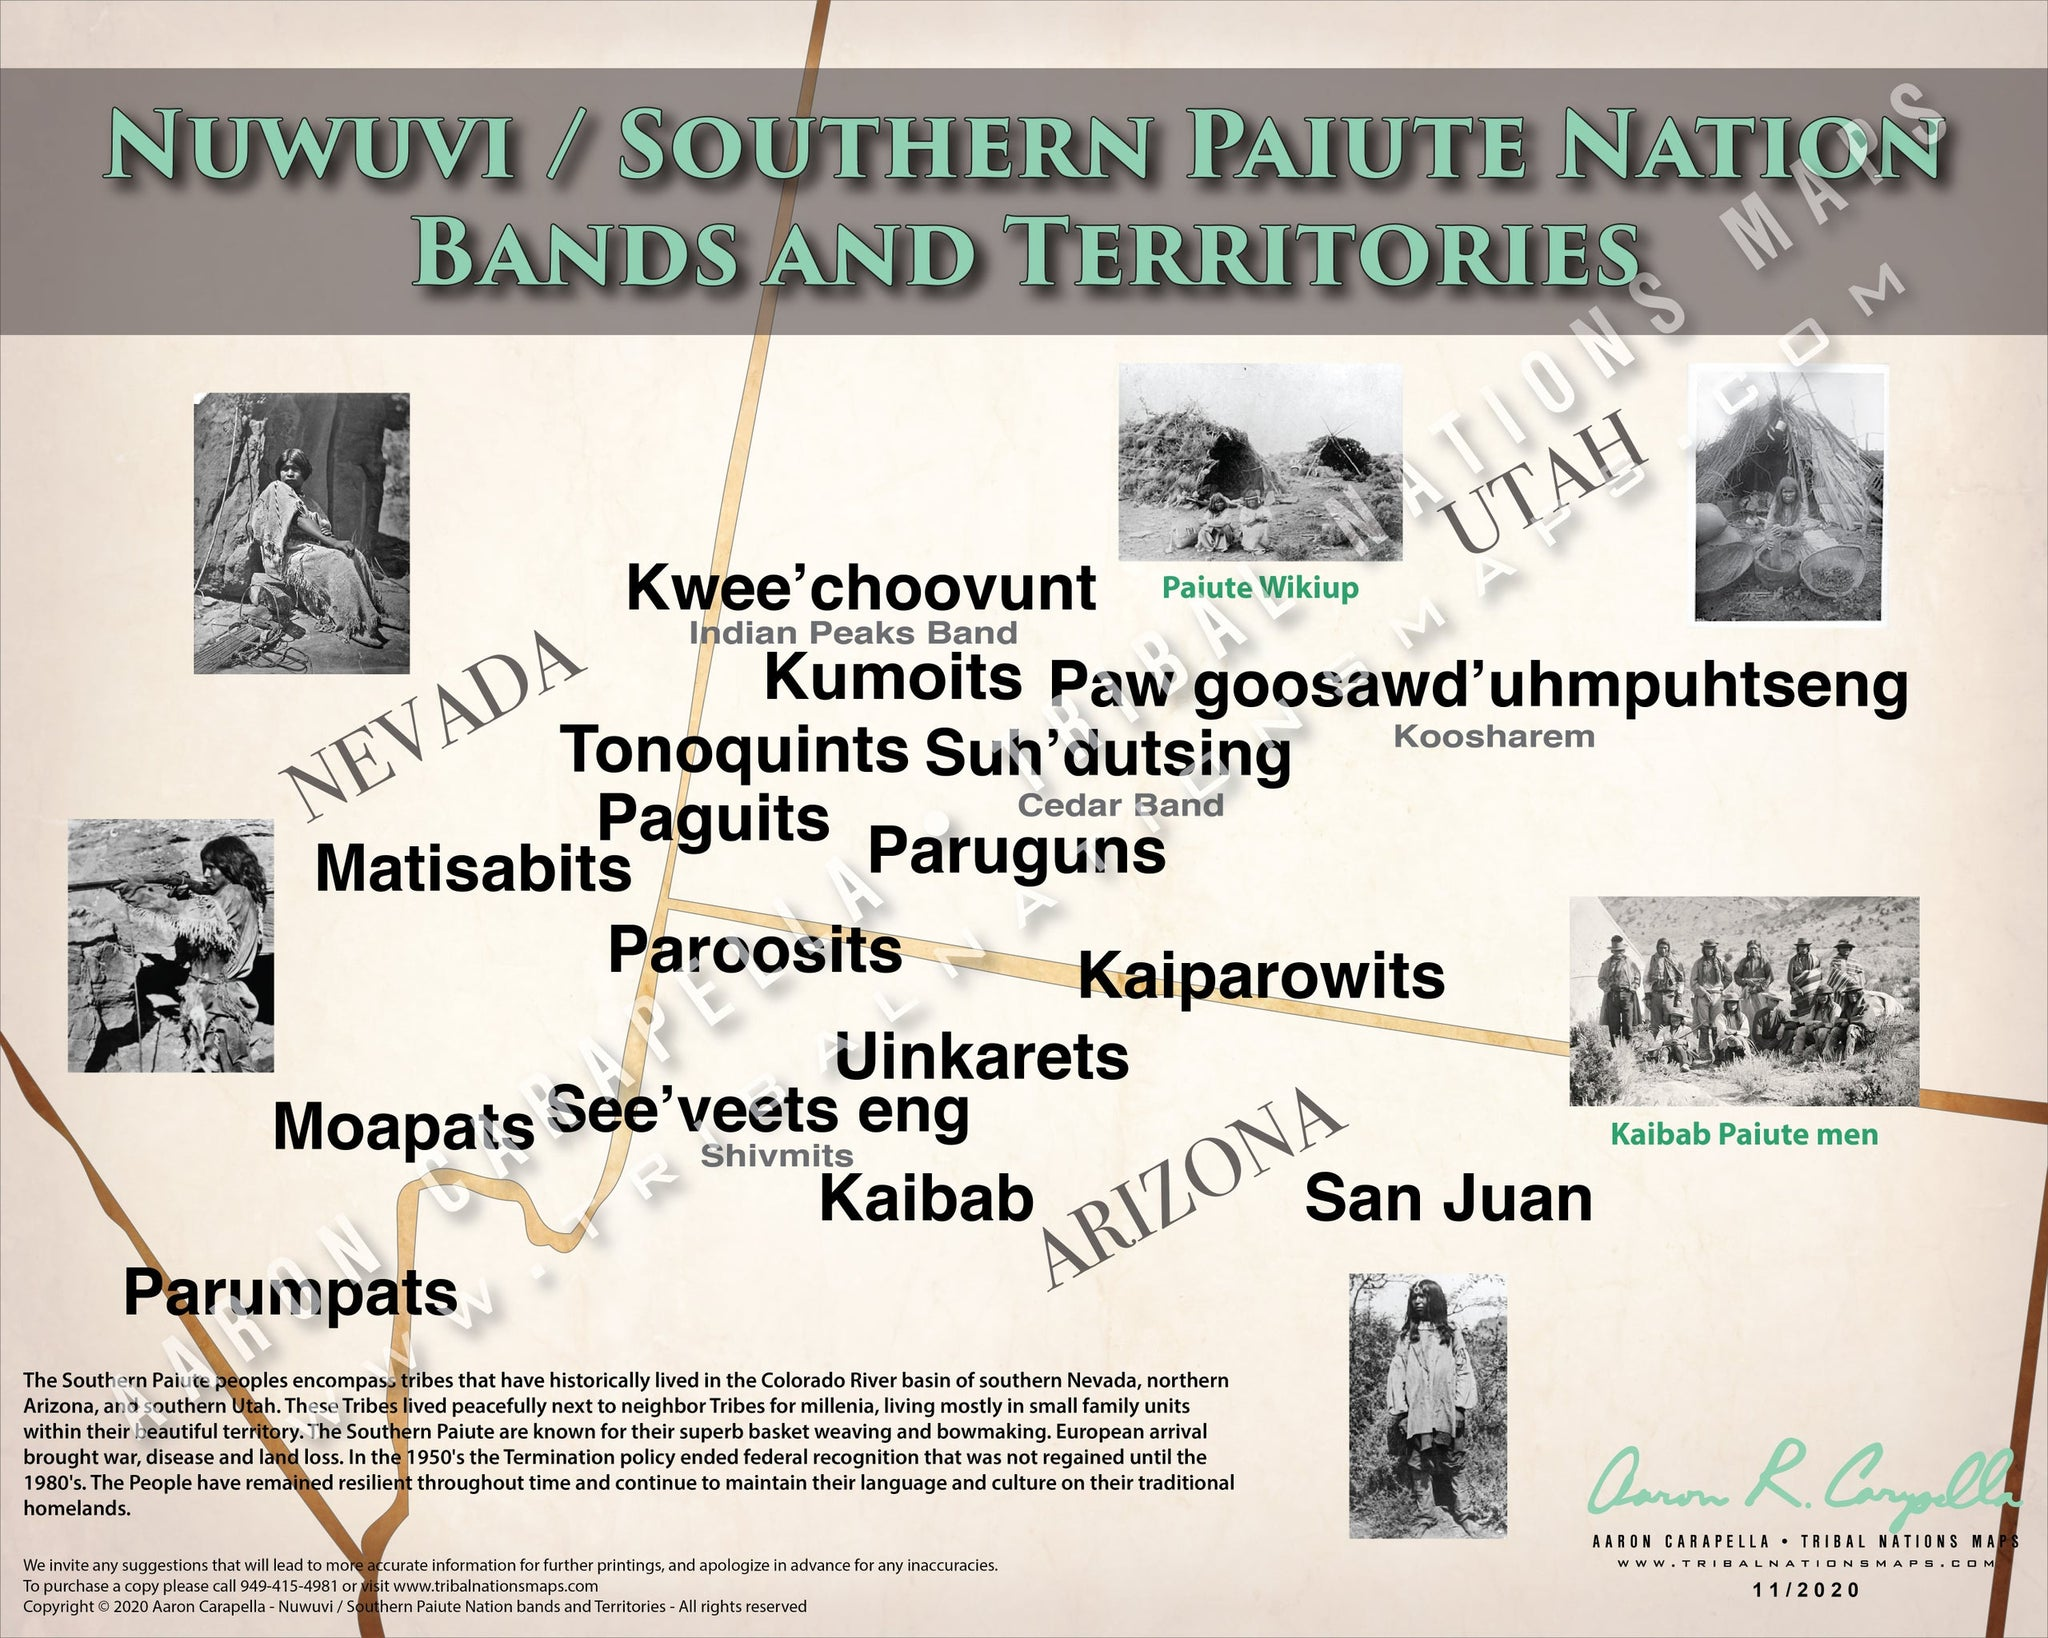 Nuwuvi / Southern Paiute Nation Bands and Territories Map Poster